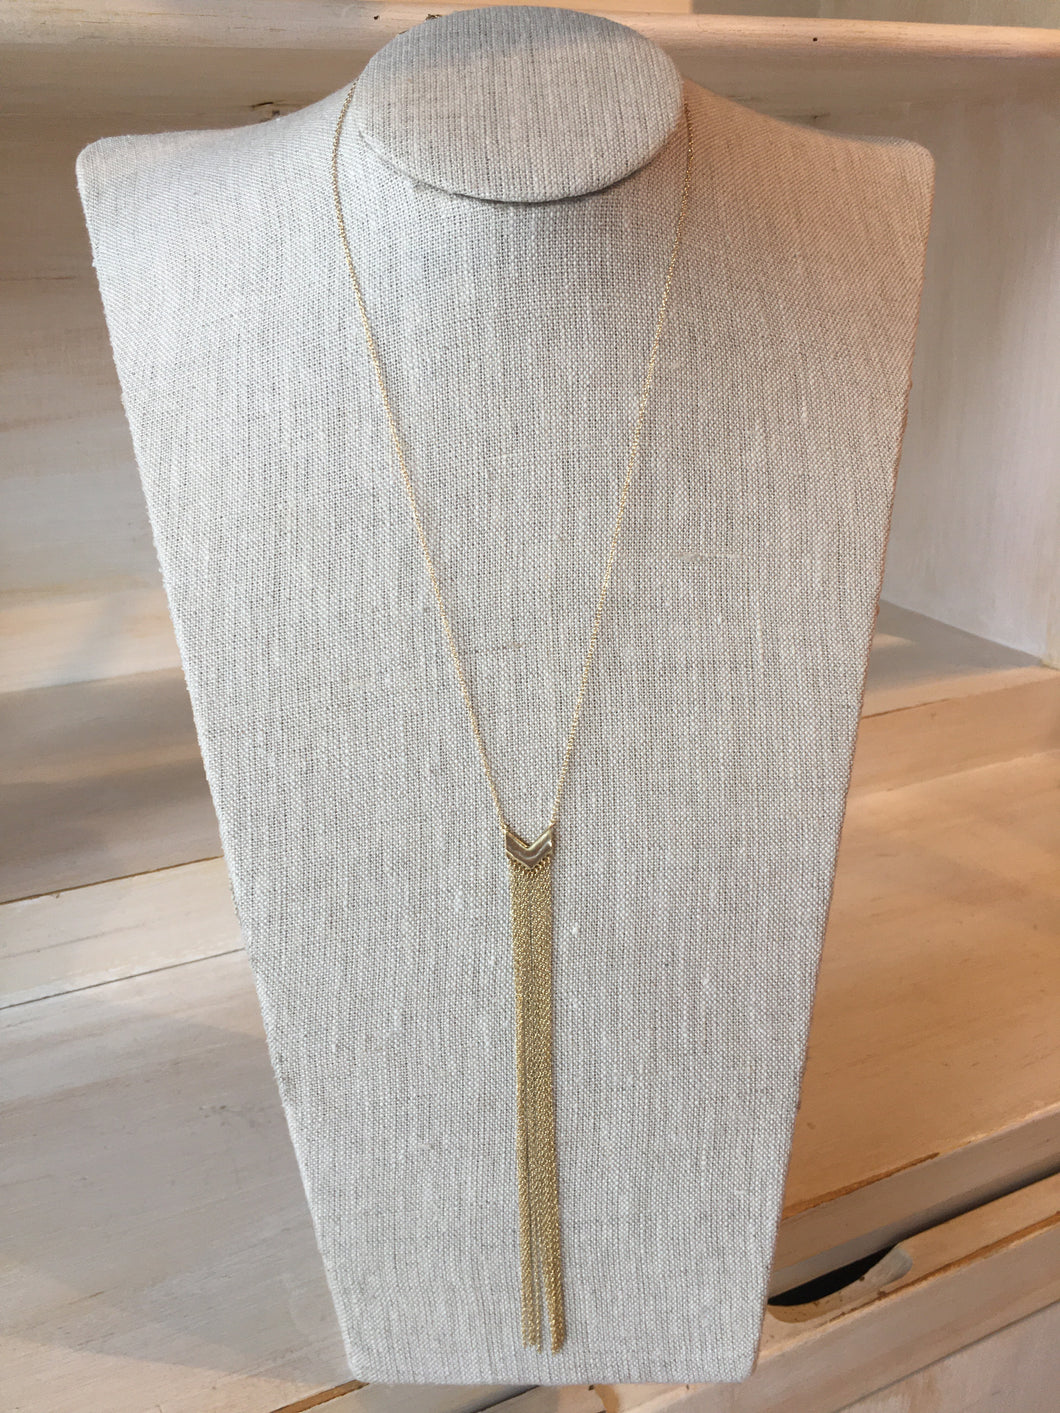 Gold long tassle necklace.